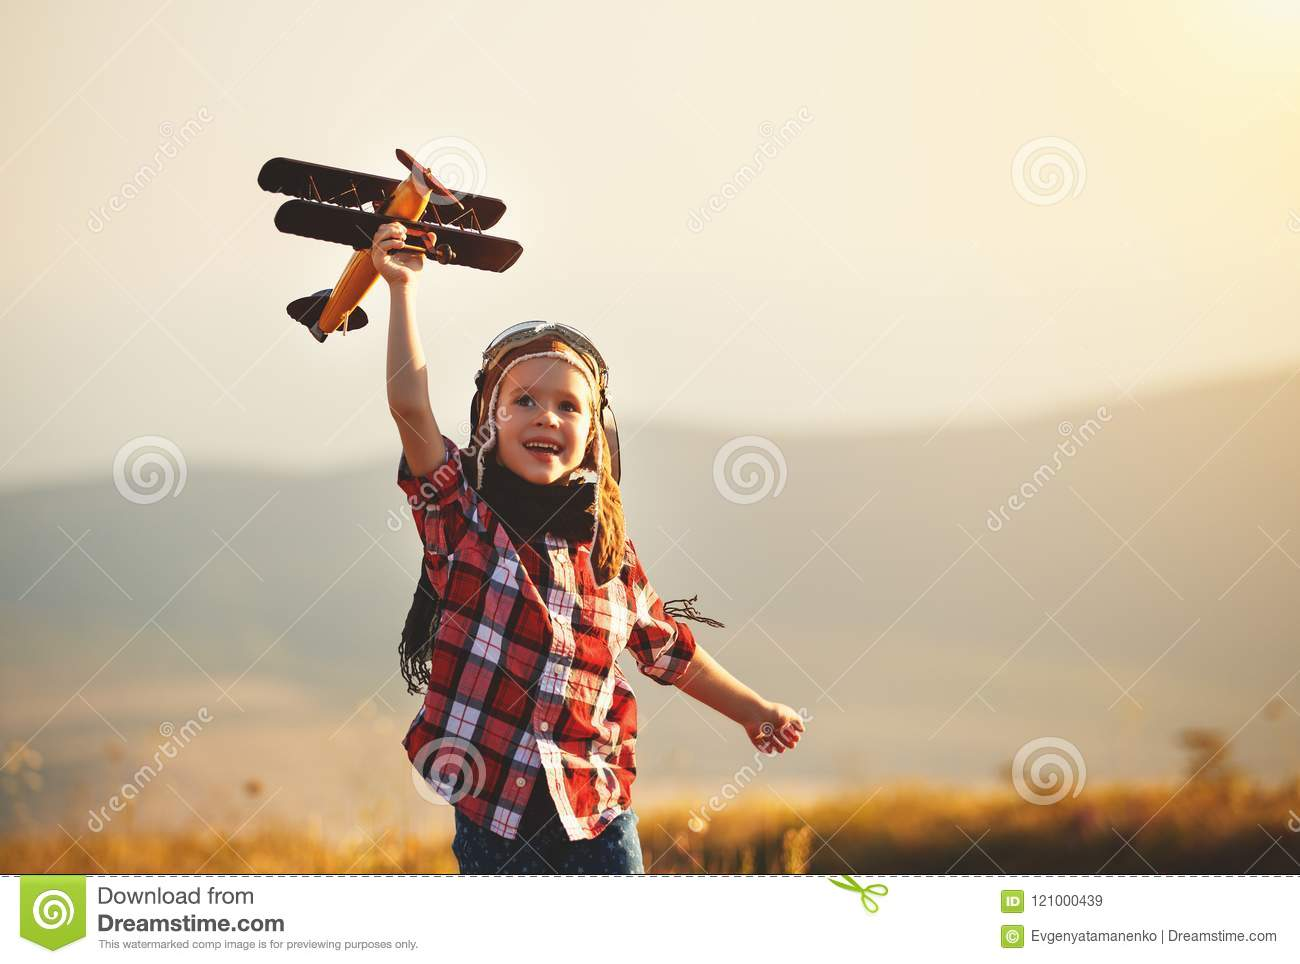 Child Pilot Aviator With Airplane Dreams Of Traveling In